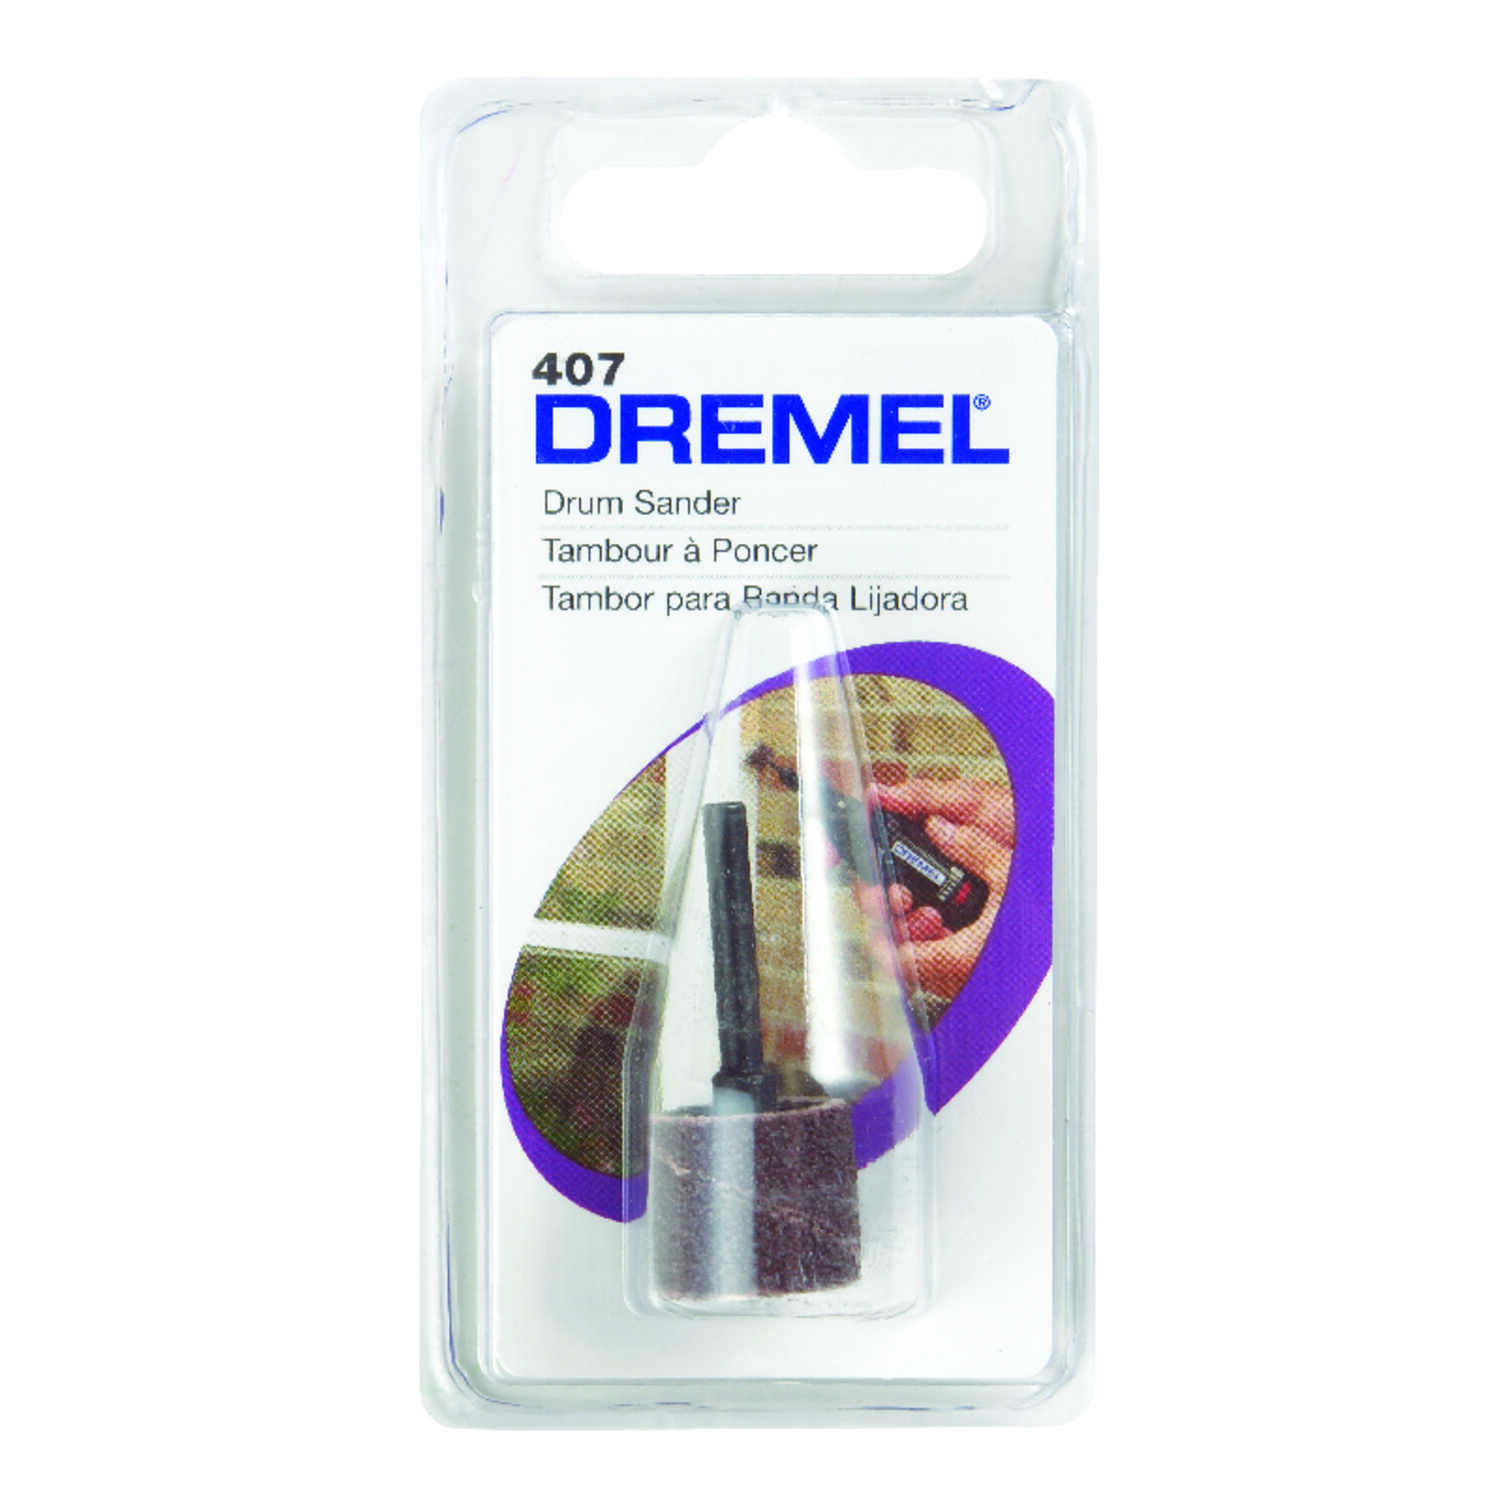 Dremel  0.5 in. Dia. x 1/2 in. L Aluminum Oxide  Drum Sander Bands  60 Grit Coarse  1 pc.